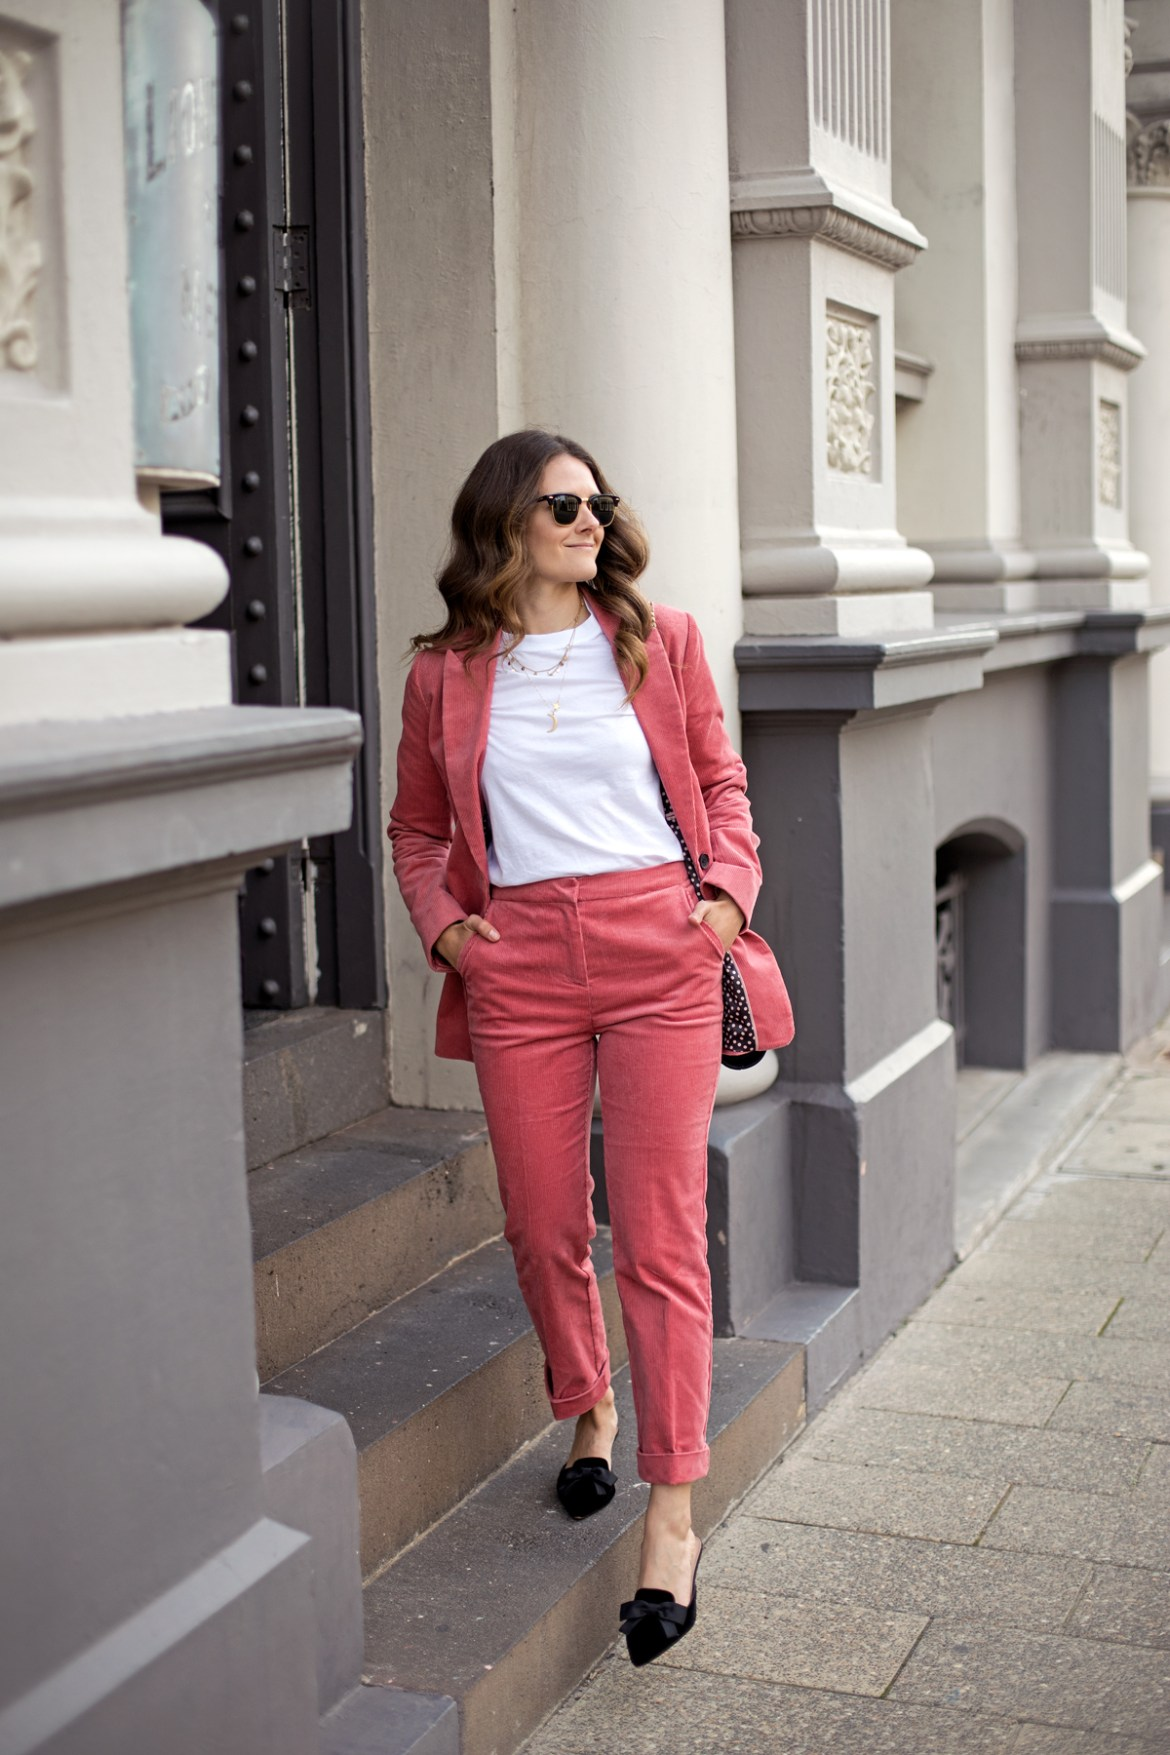 Boden Oxshott corduroy suit blazer and straight leg pants in blush pink worn by fashion blogger from Australia Jenelle Witty of Inspiring Wit Ray-ban sunglasses